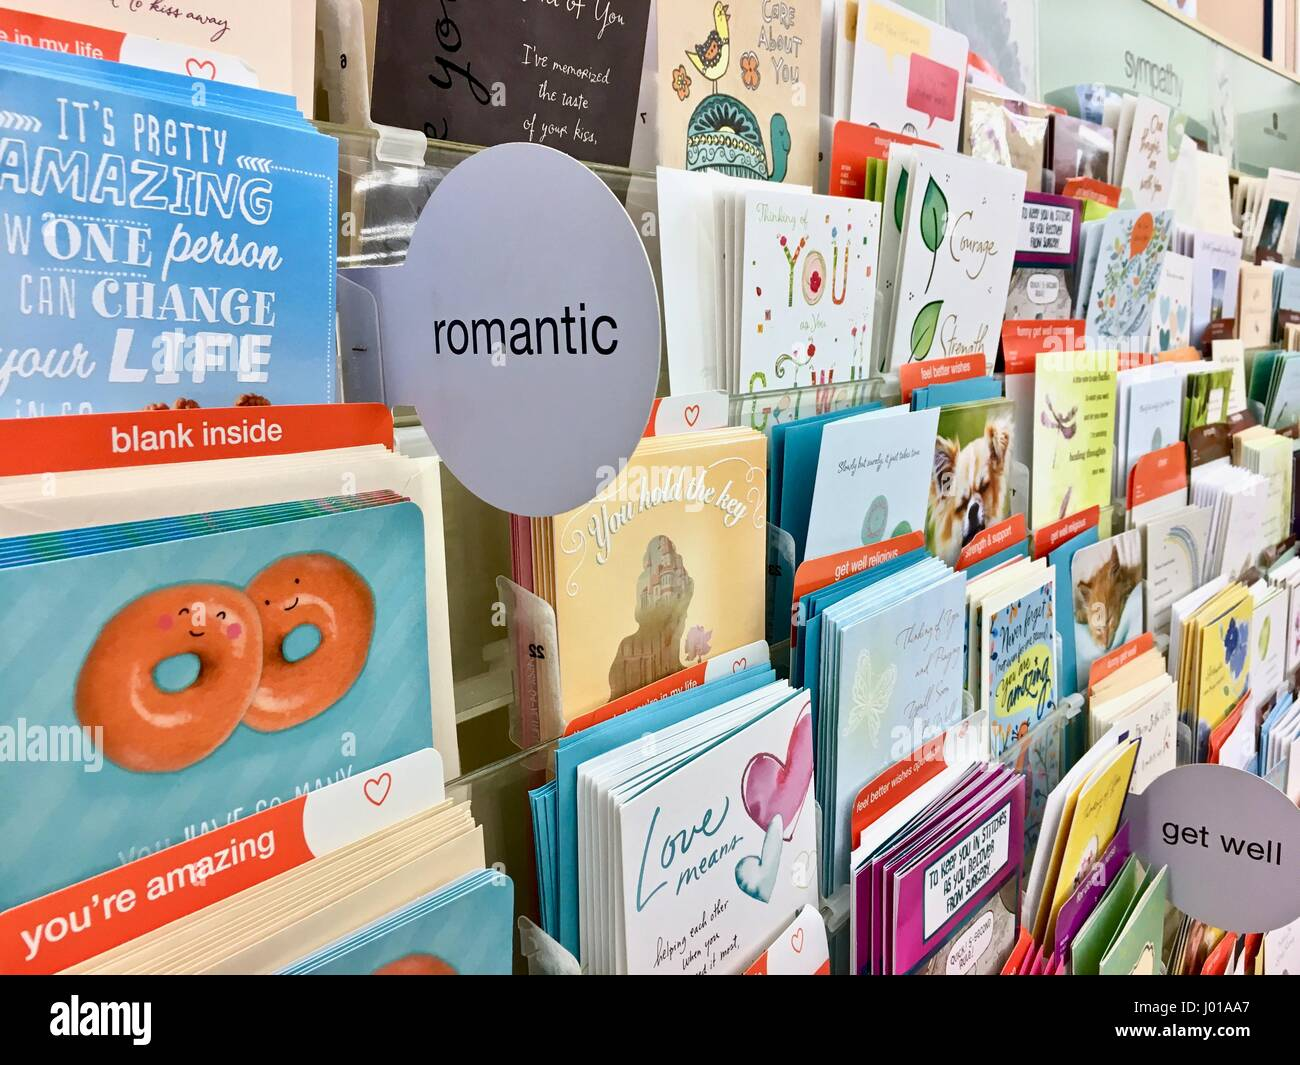 greeting cards birthday cards romantic cards get well cards stock